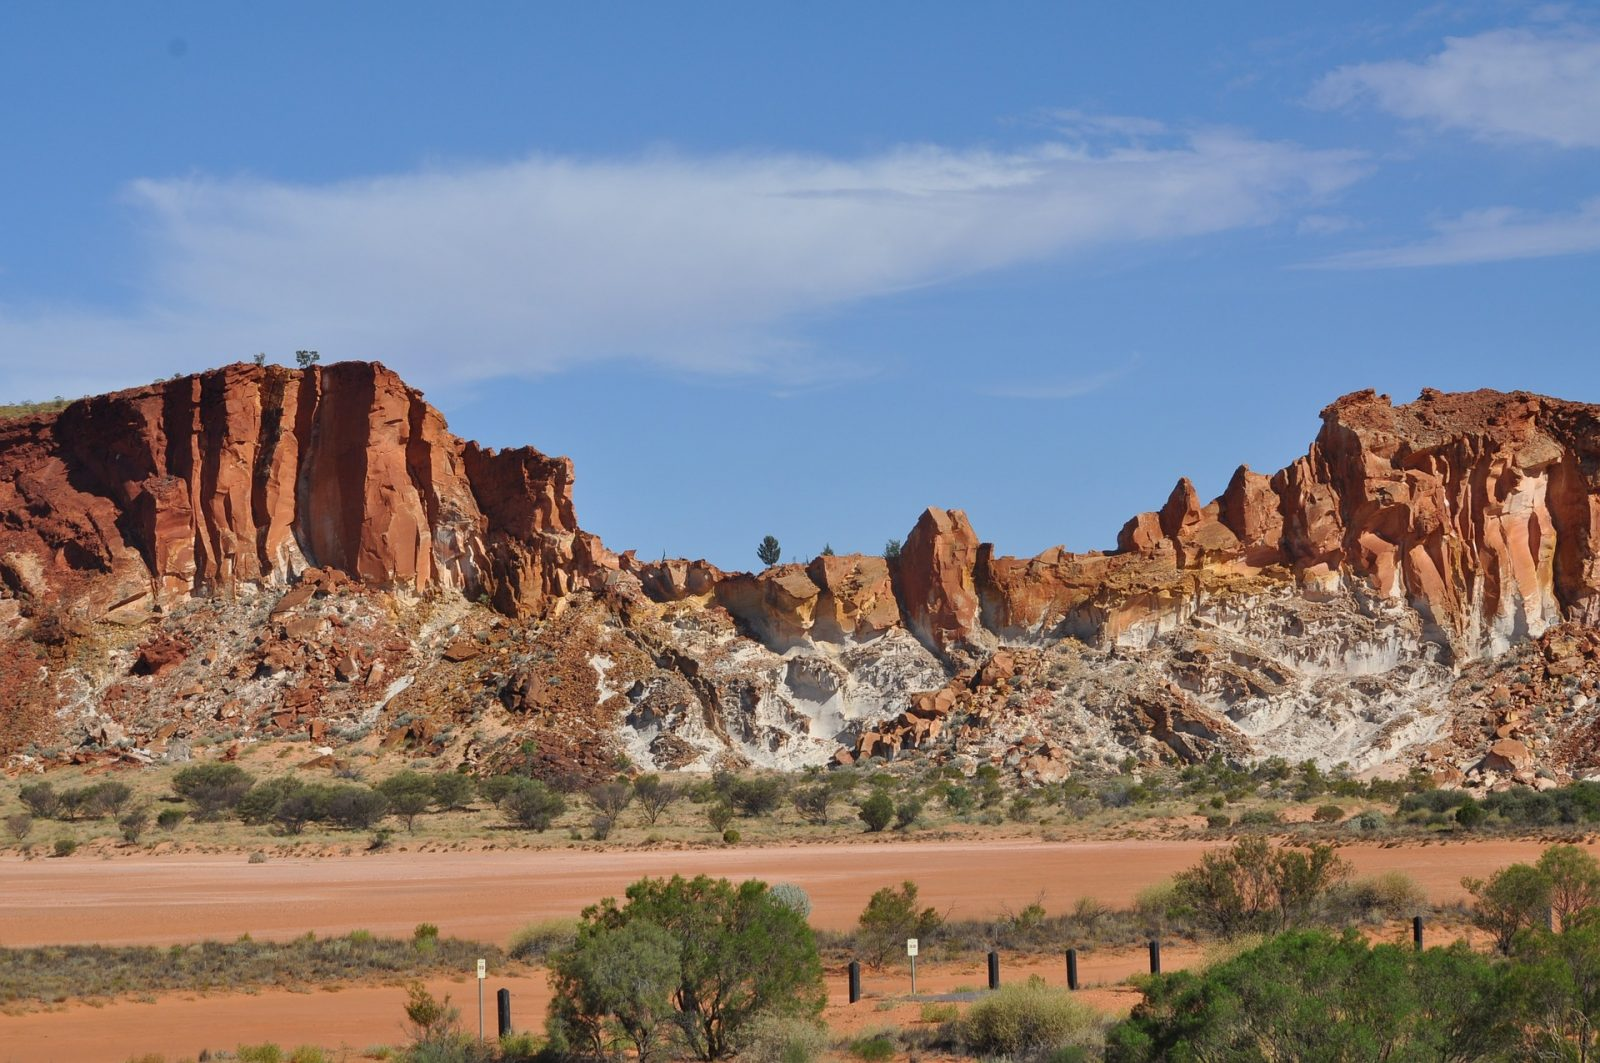 Uluru Tour: Just outside of Alice Springs